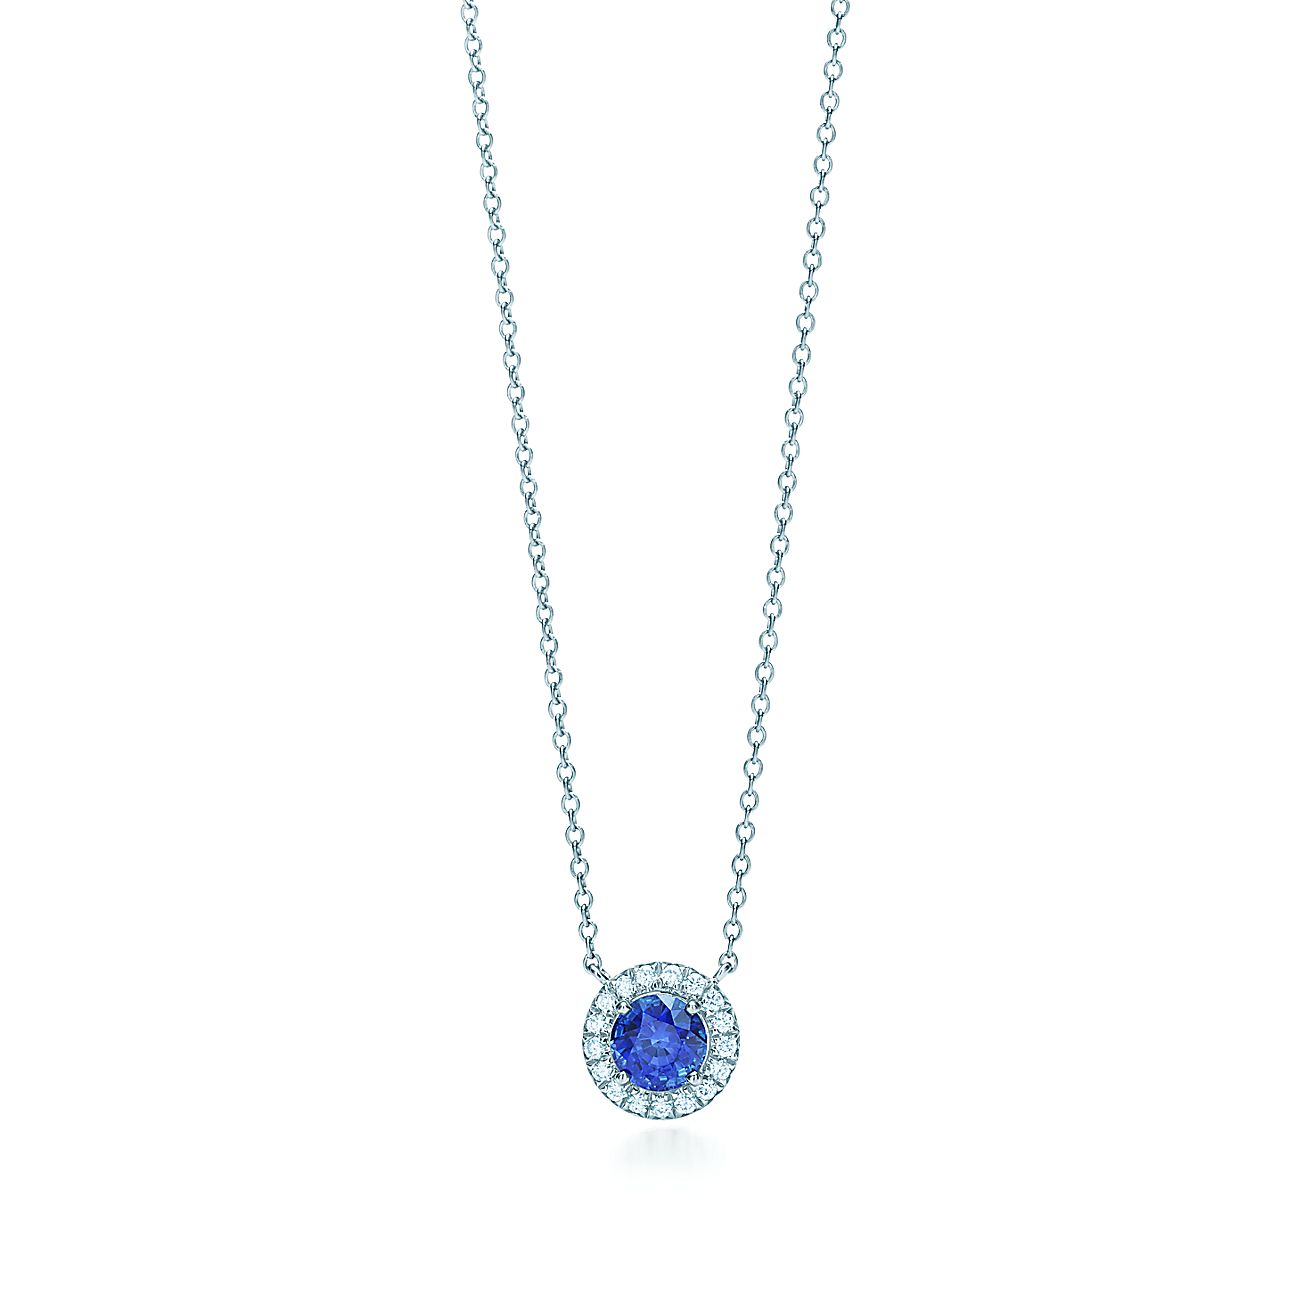 Tiffany soleste pendant in platinum with a sapphire and diamonds tiffany soleste pendant in platinum with a sapphire and diamonds tiffany co aloadofball Image collections